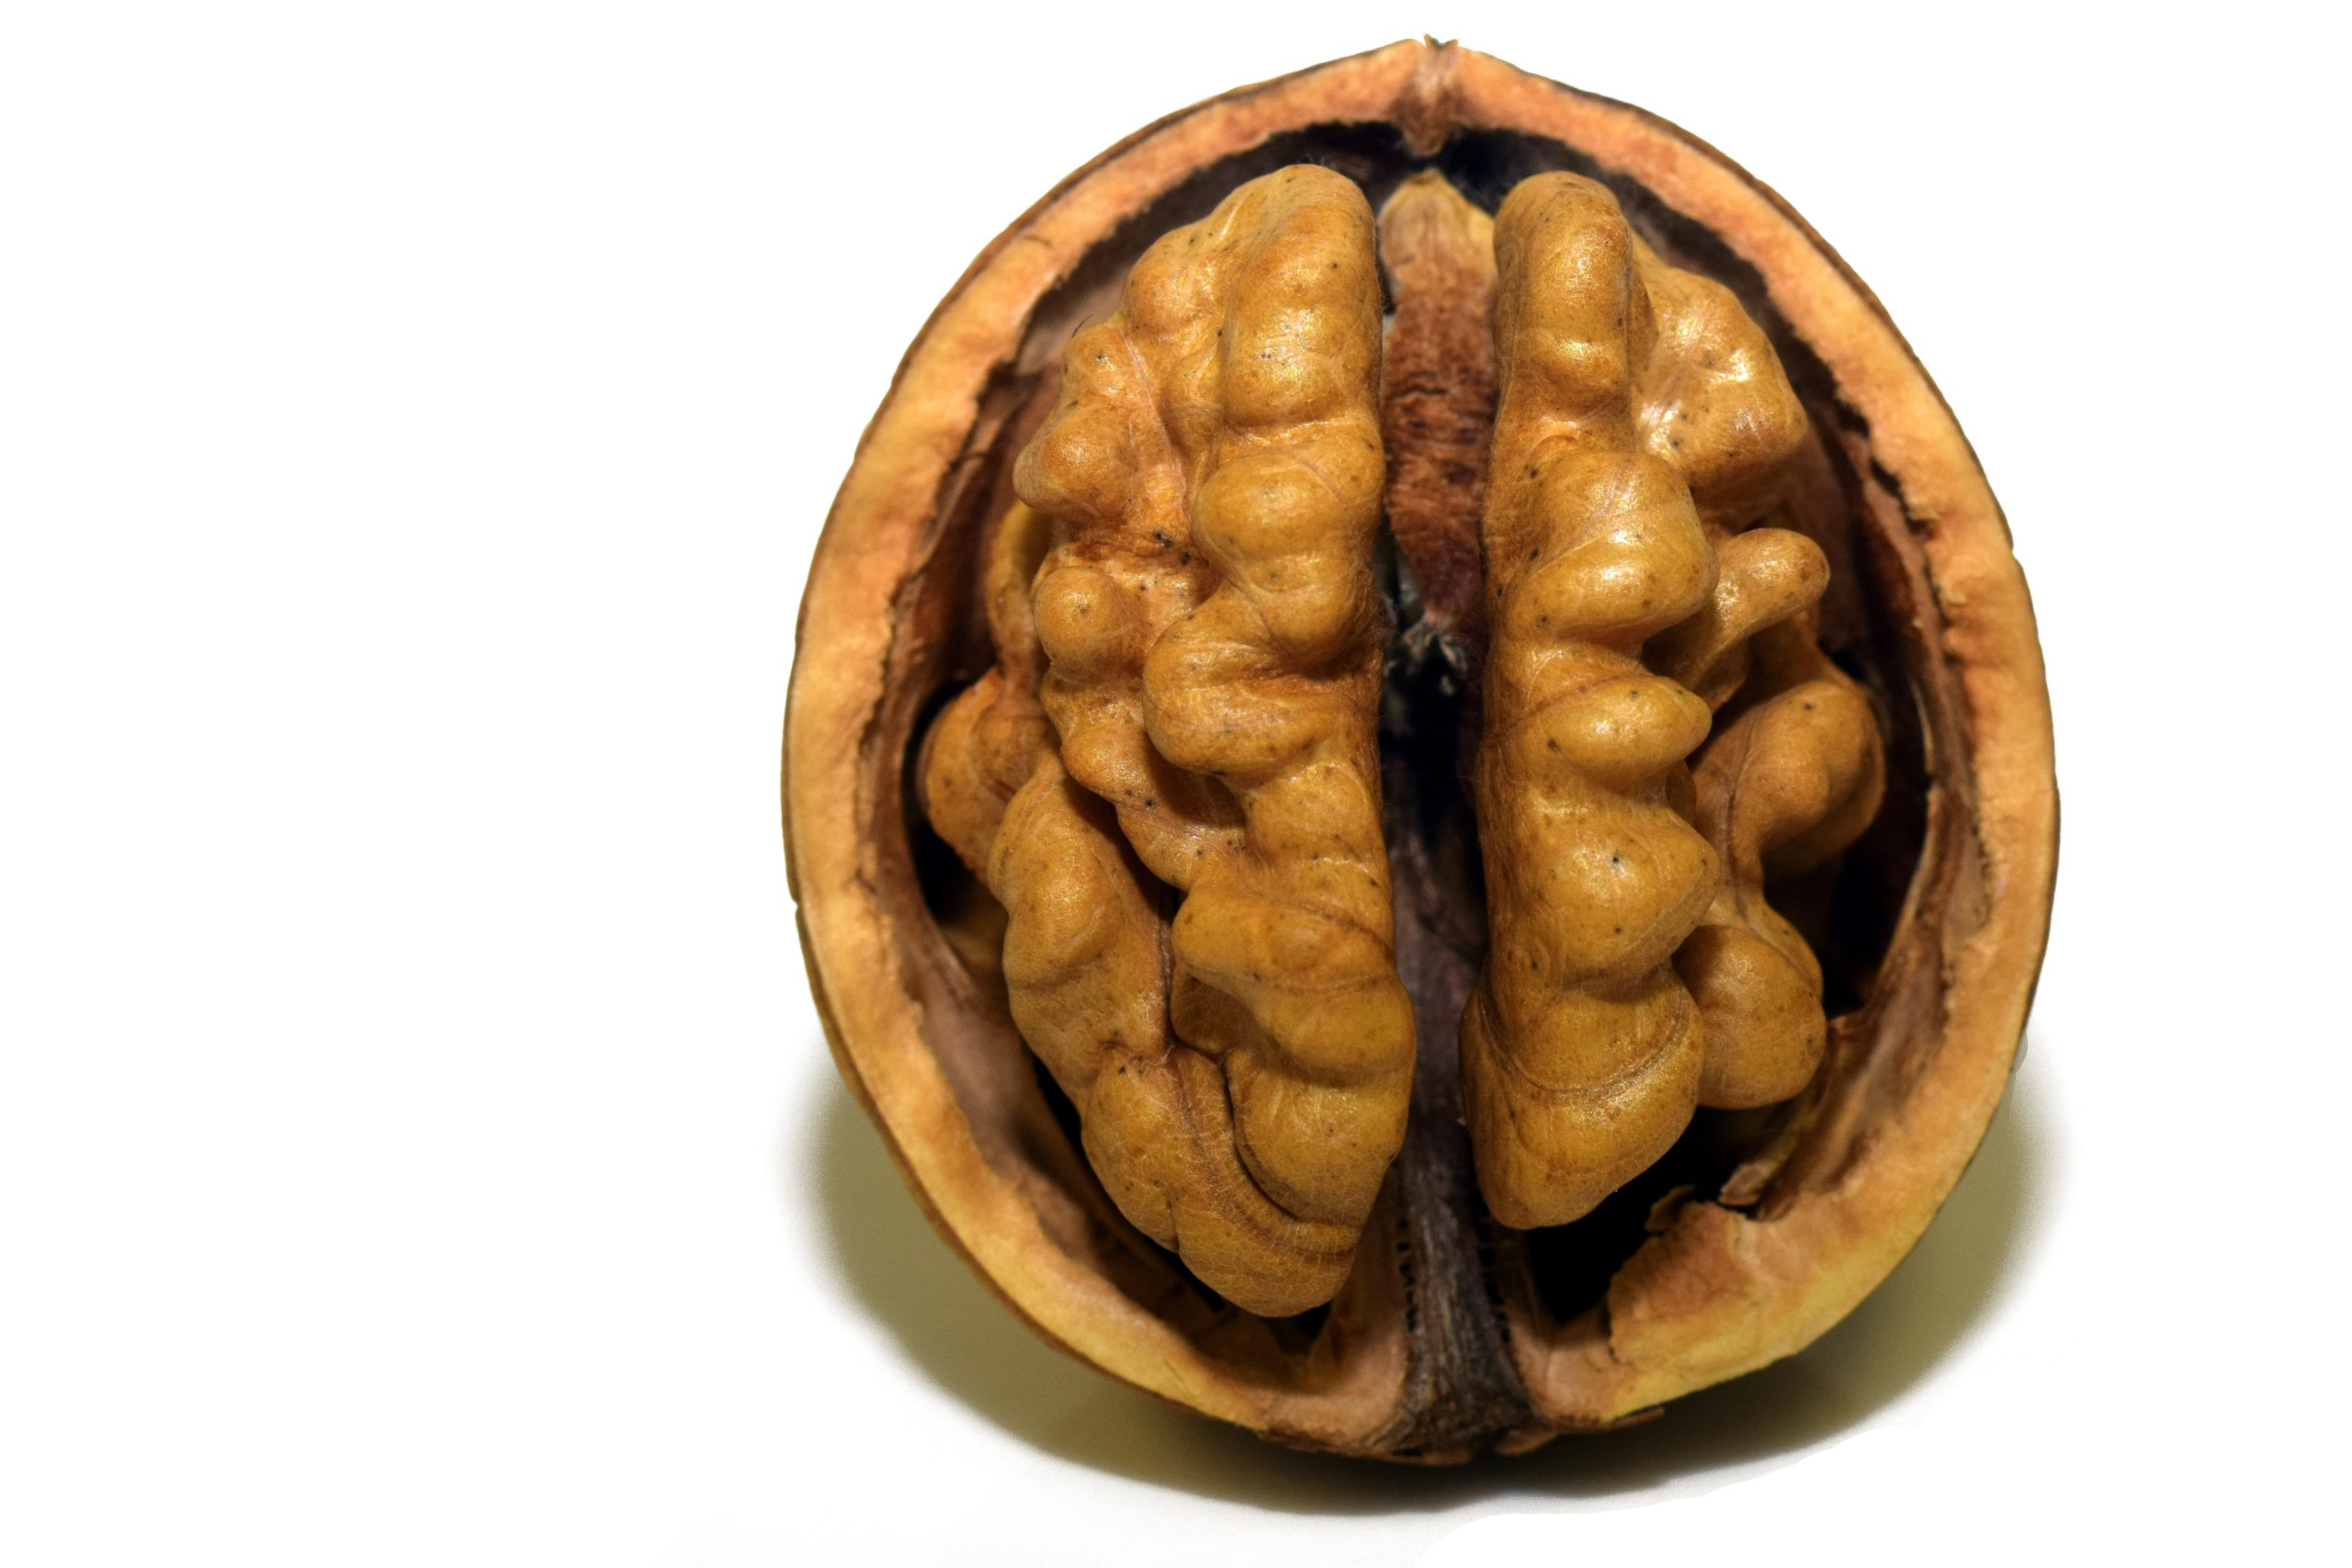 Walnut half looking like brain